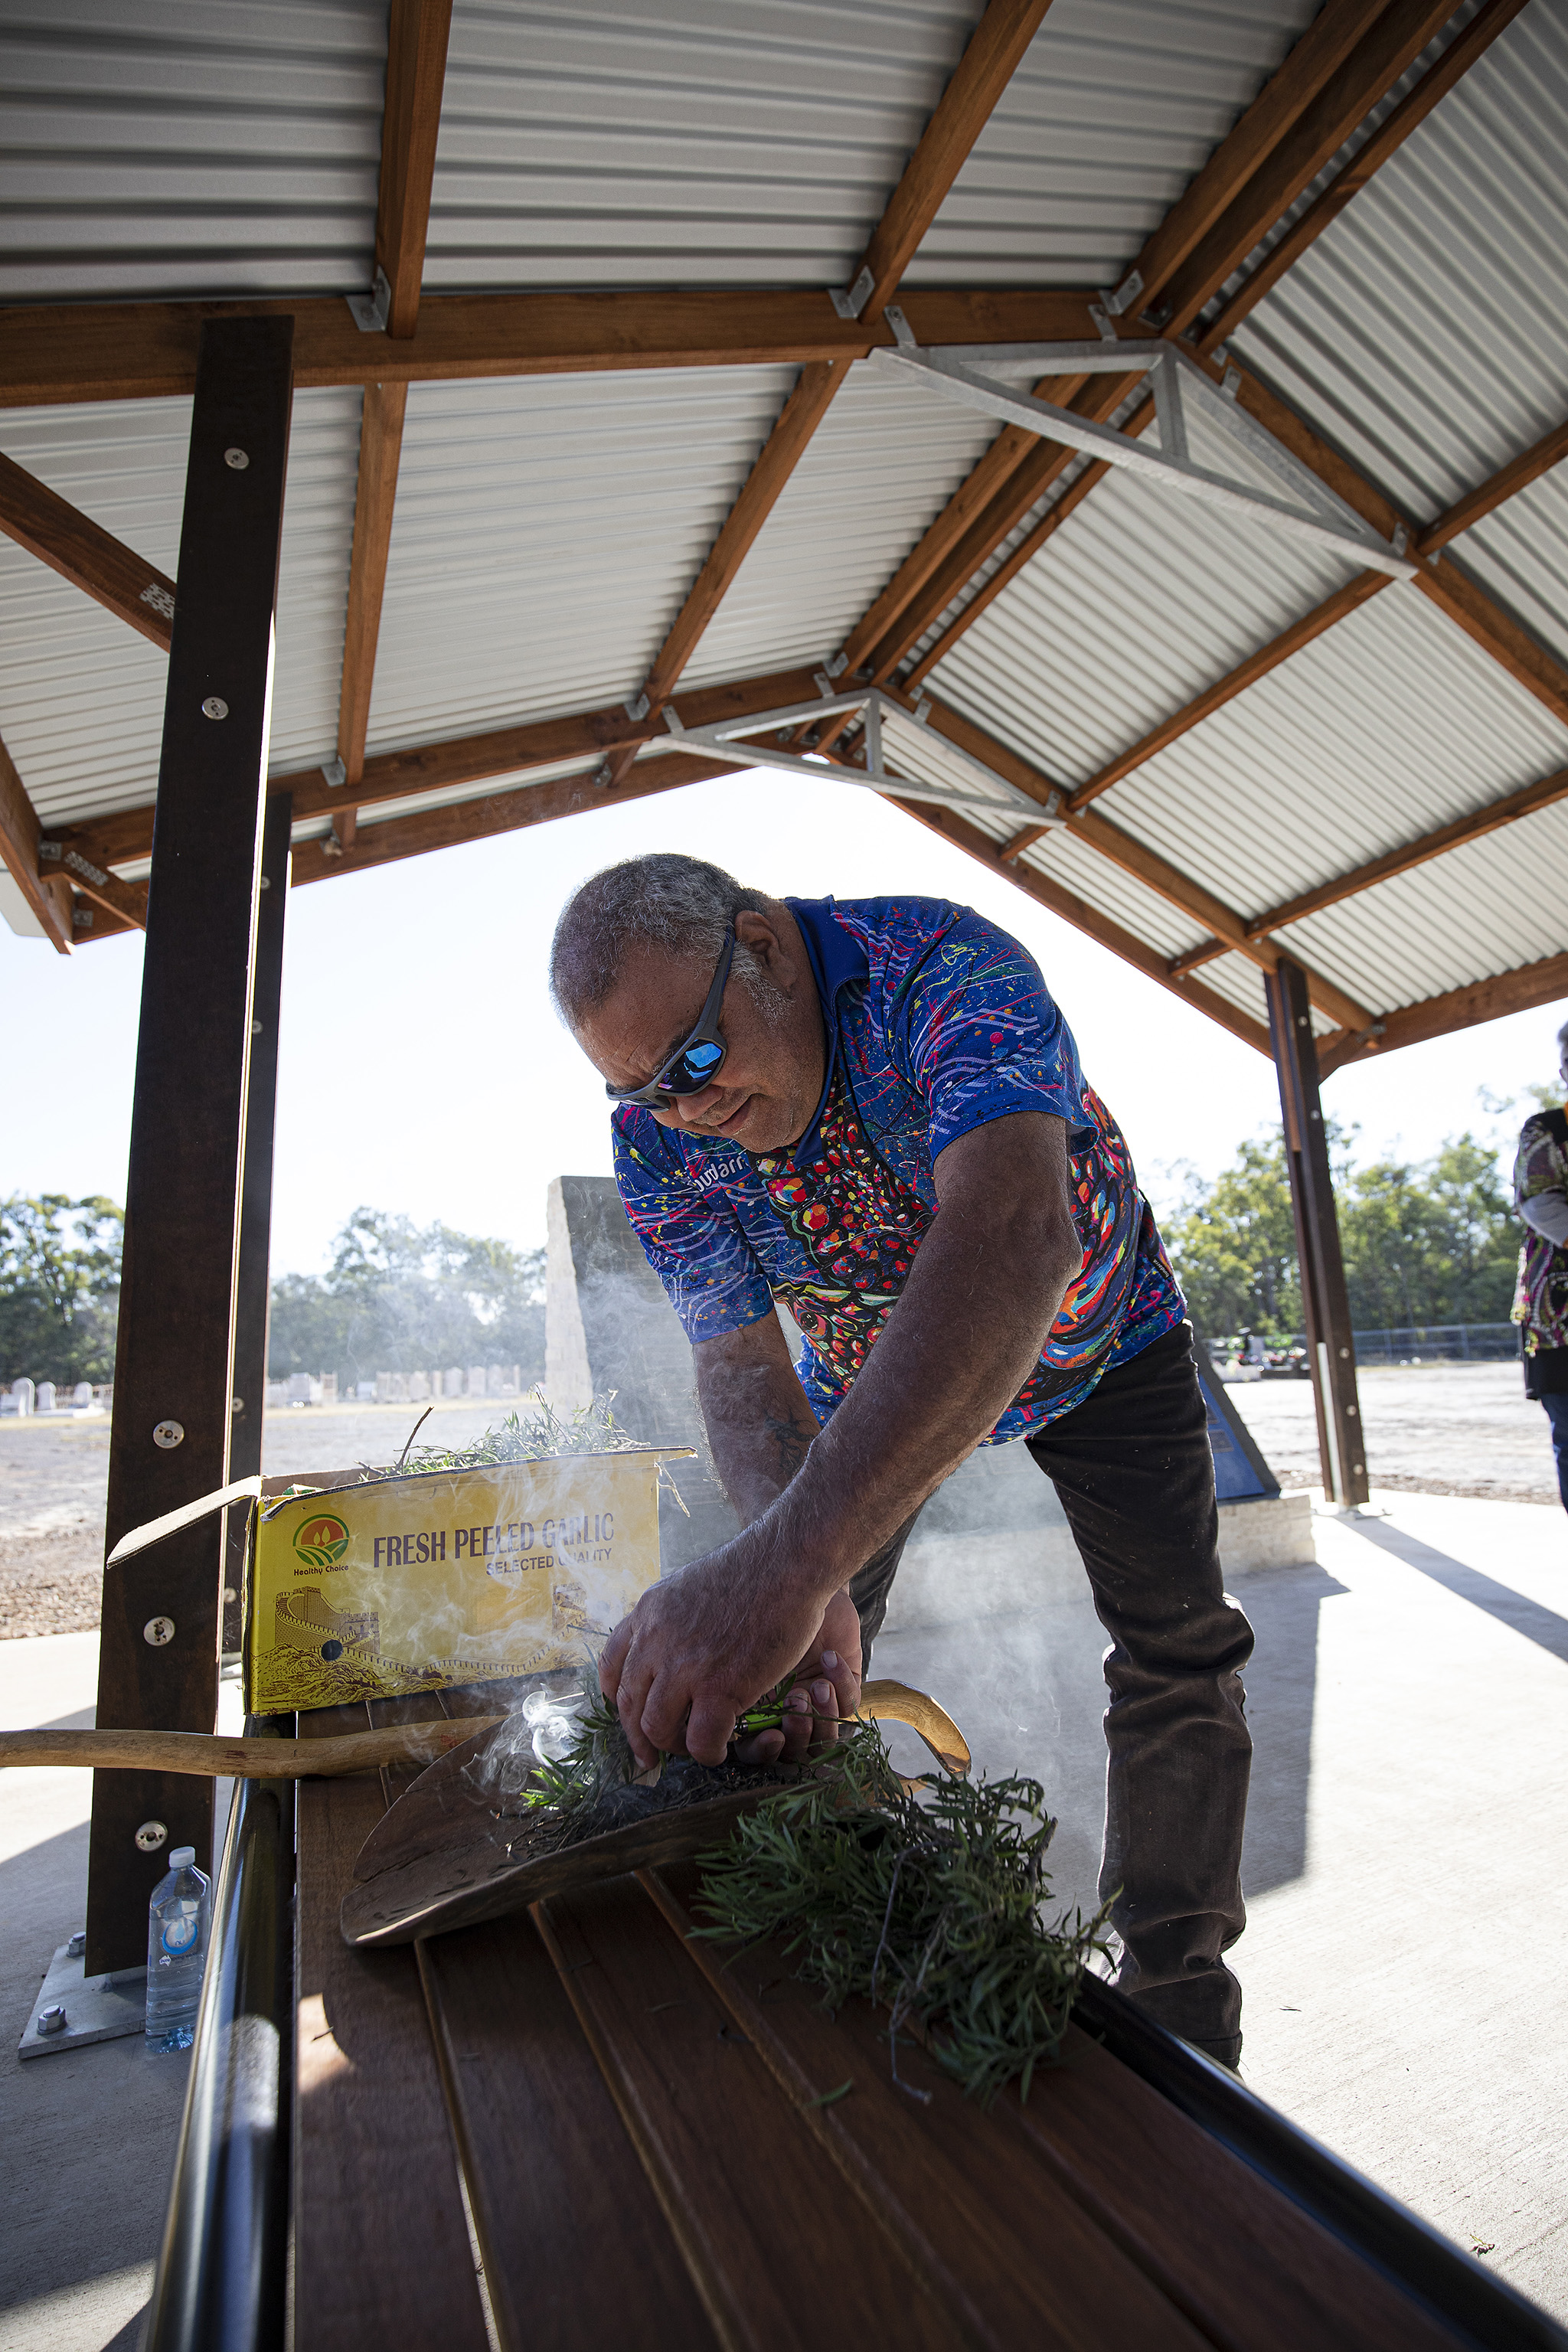 Steven kemp completed the smoking ceremony on behalf of the koinjmal people